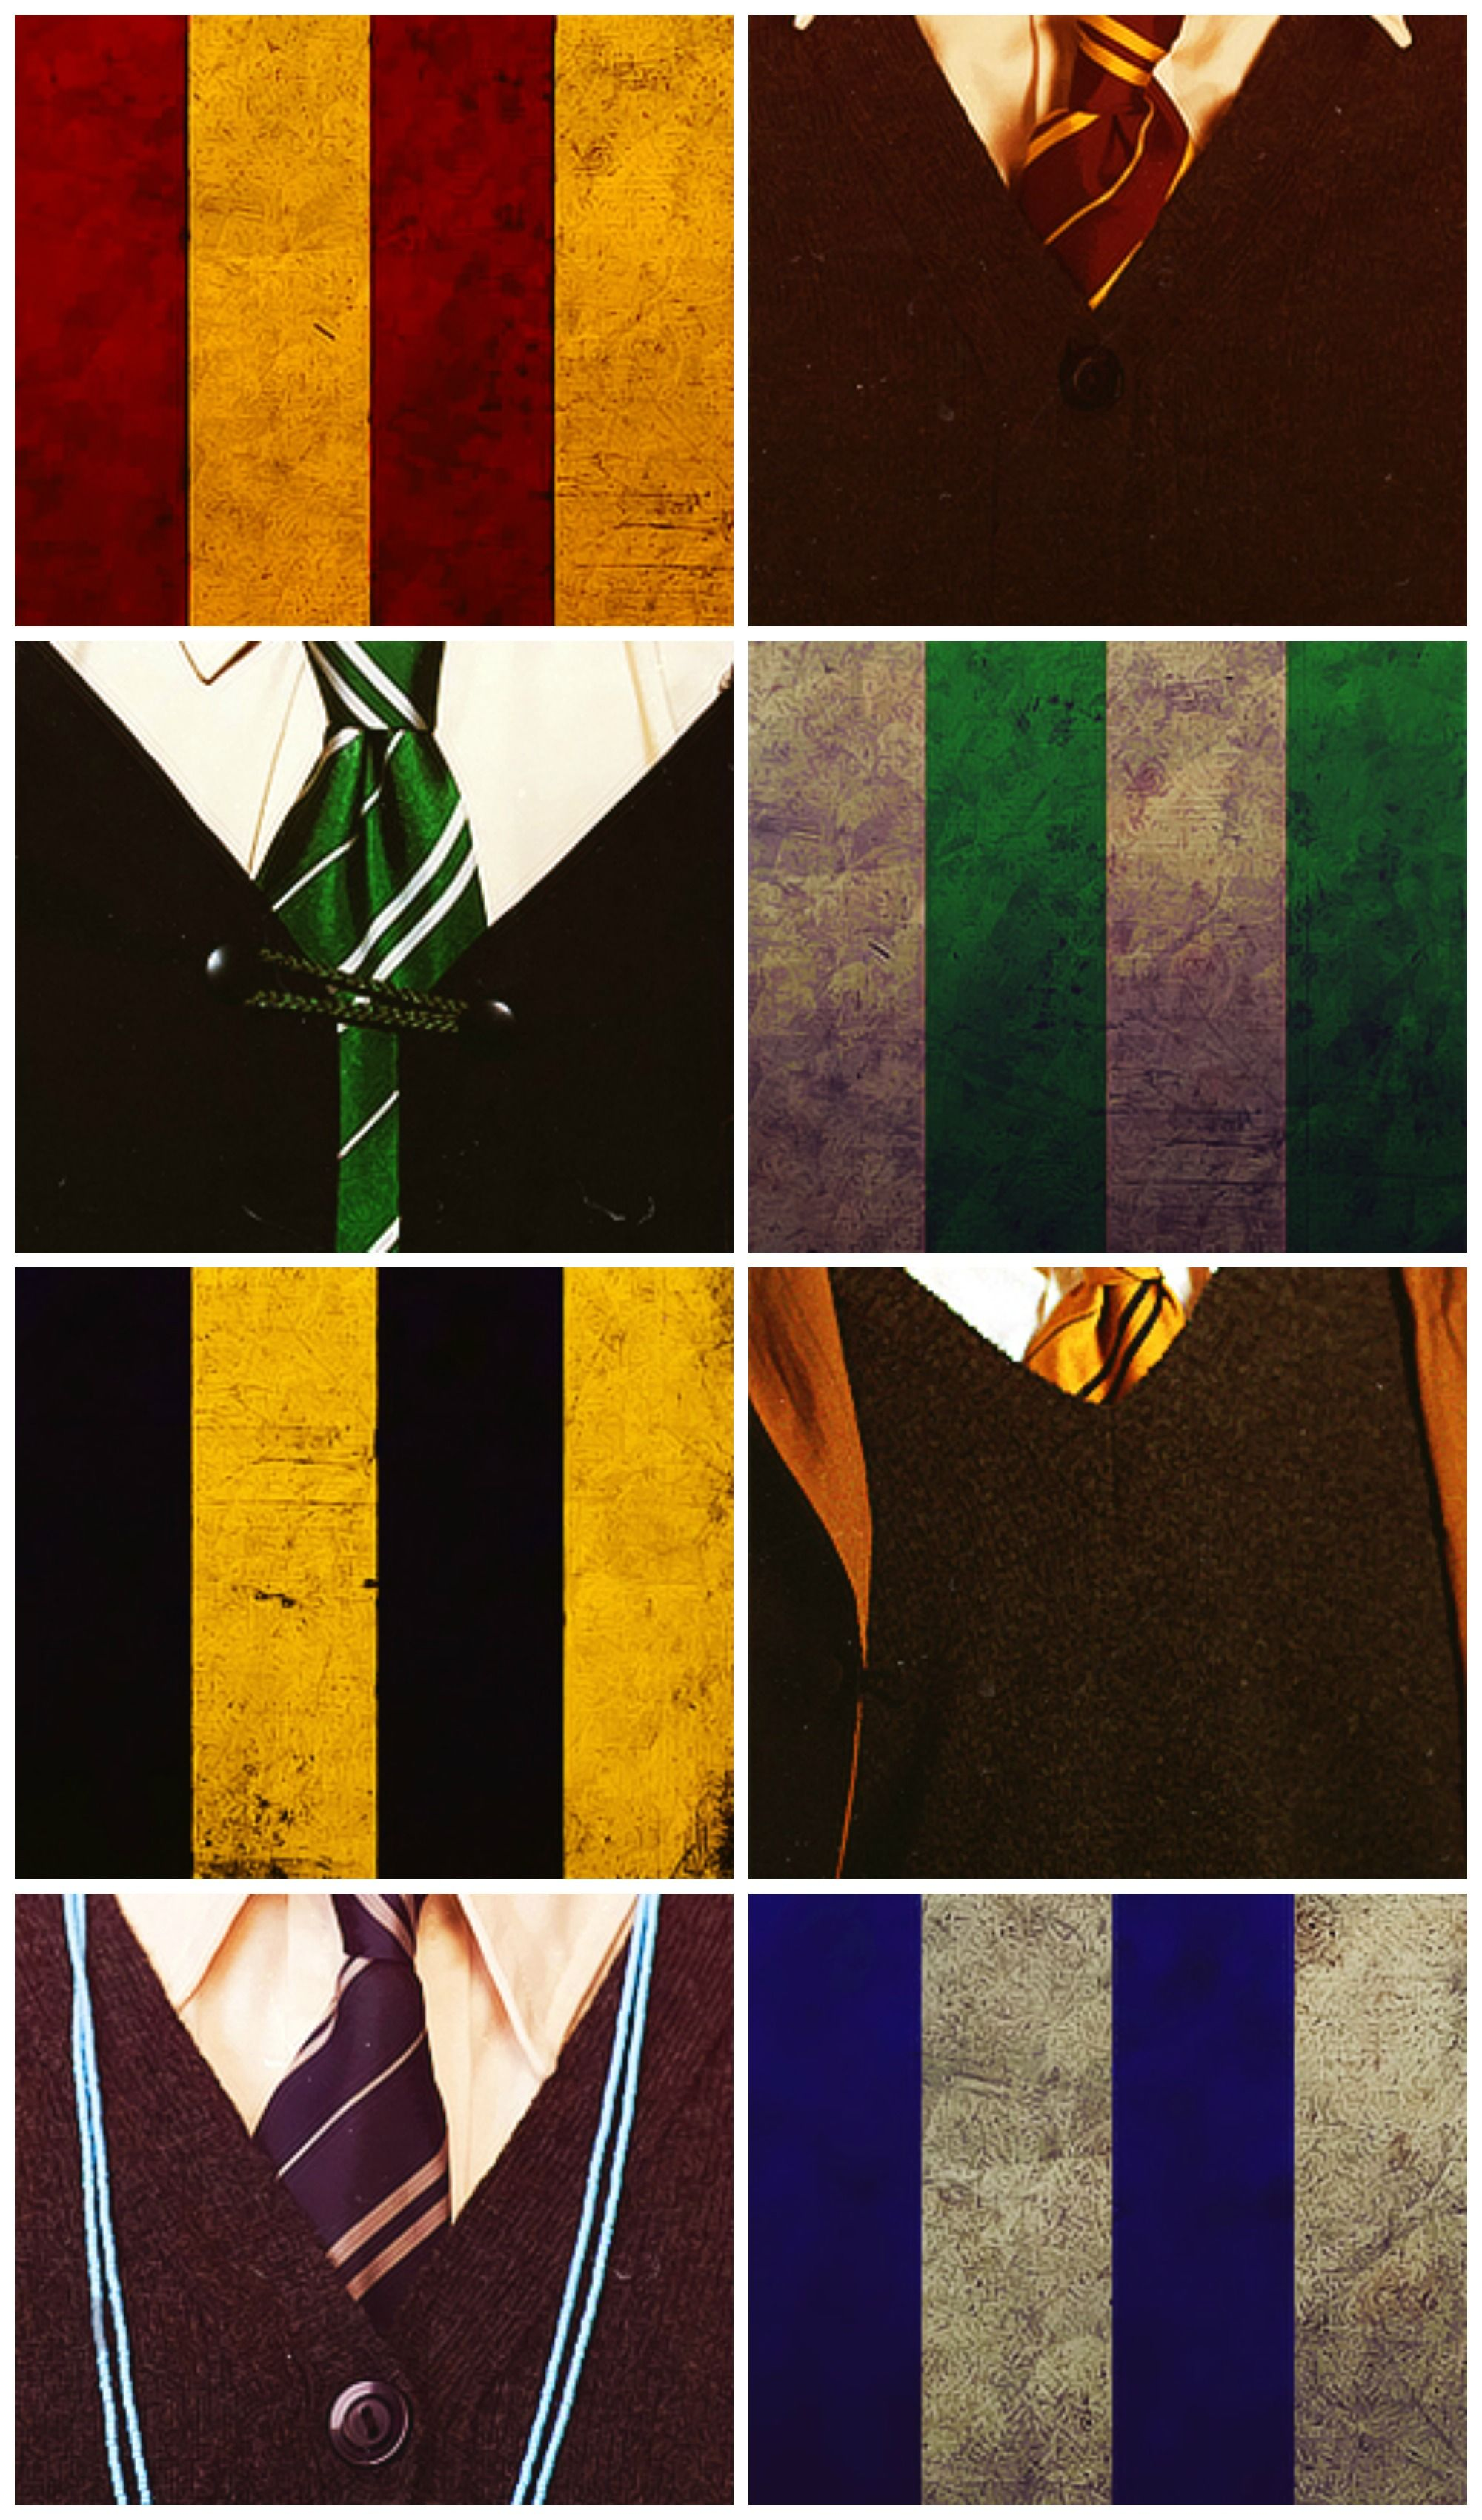 This Is Cool Except For Messing Up Ravenclaw Colors Ravenclaw Farben Harry Potter Häuser Harry Potter Selber Machen